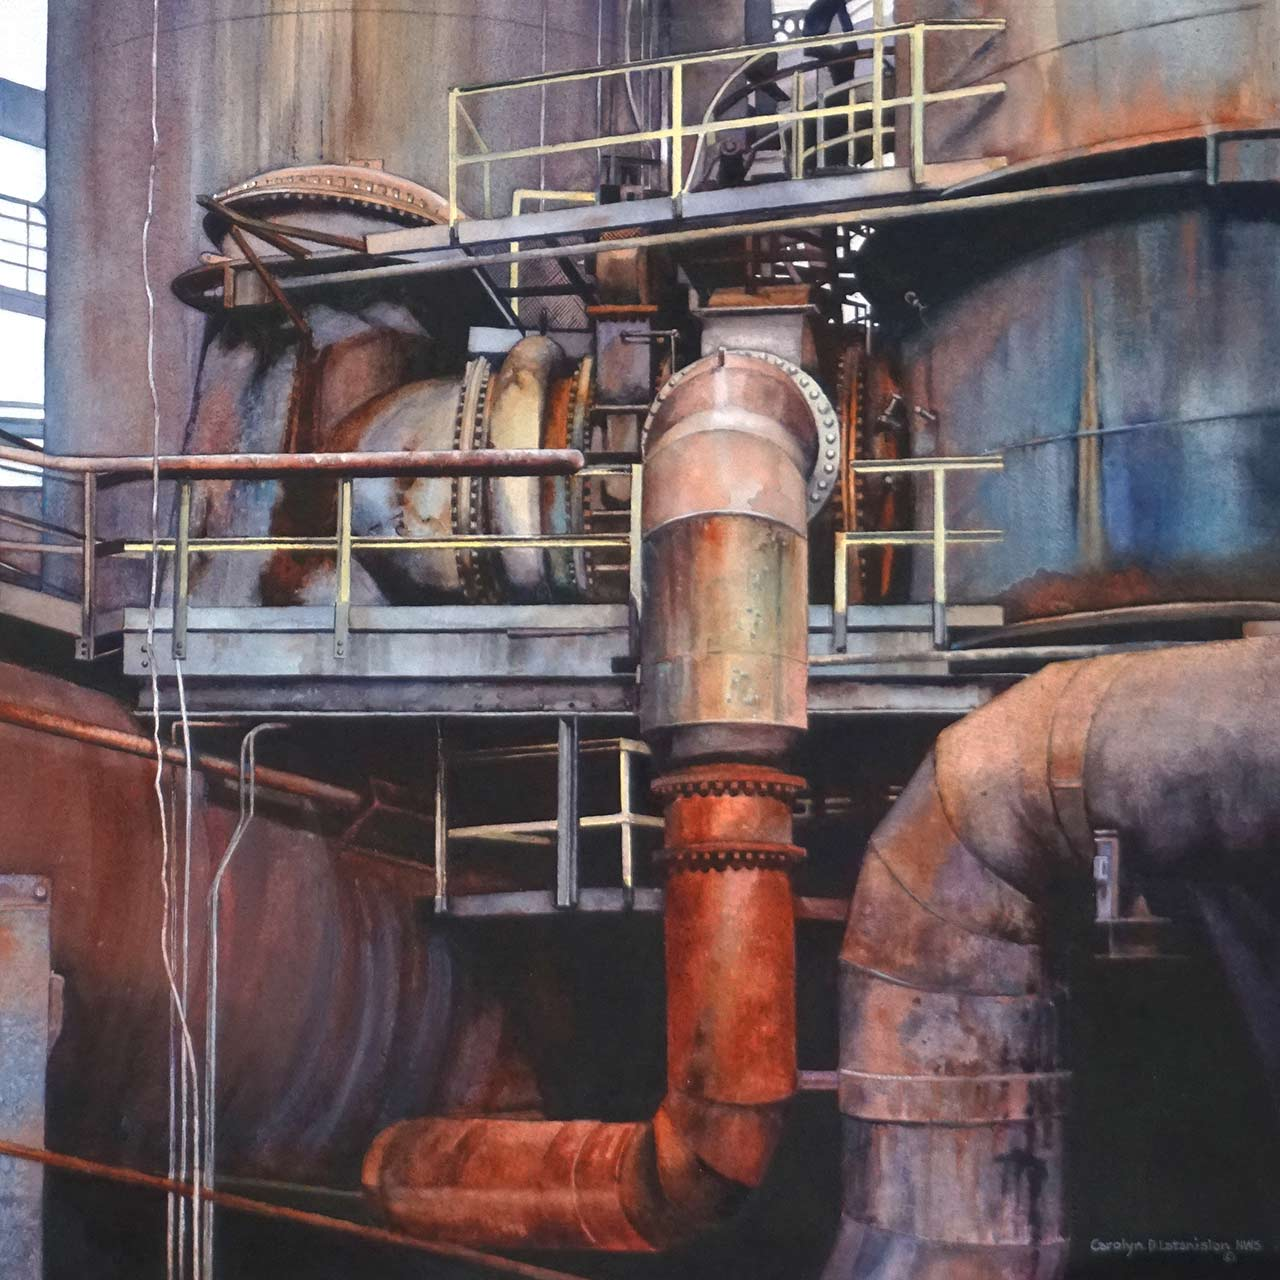 Blast Furnace Stove Air Valve | 21 x 21 watercolor